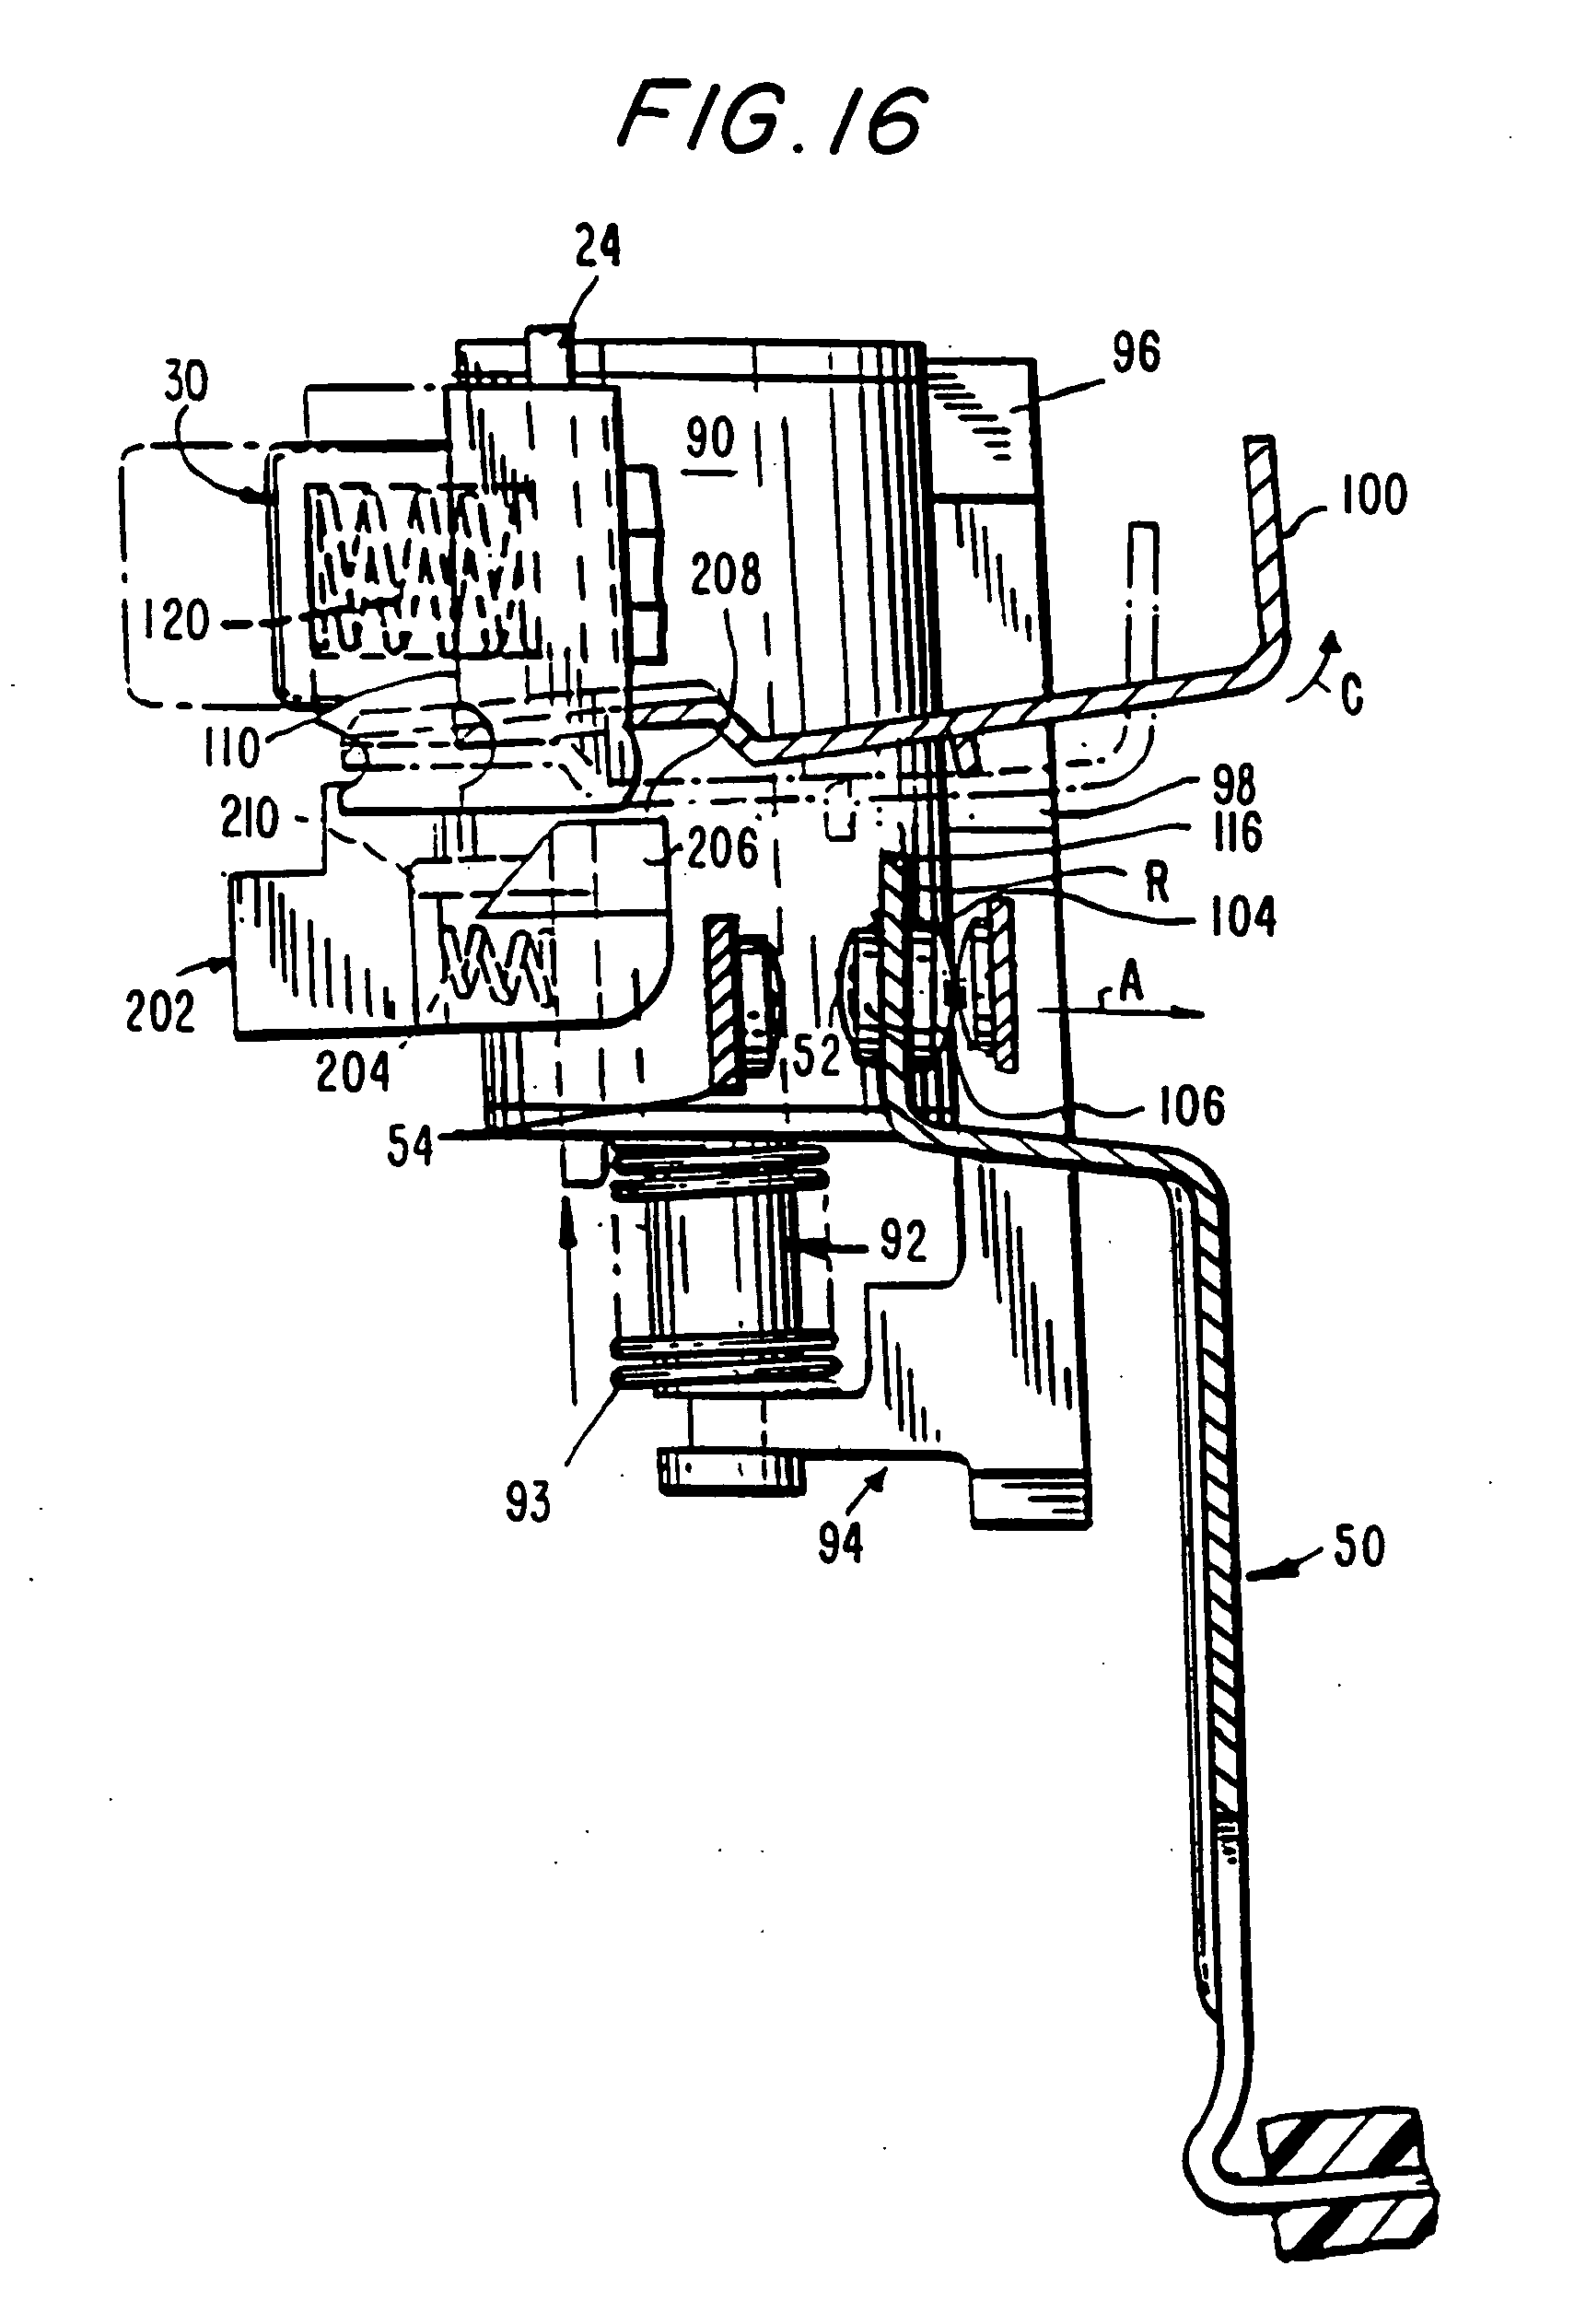 patent us20050002138 - ground fault circuit interrupter with locking reset button